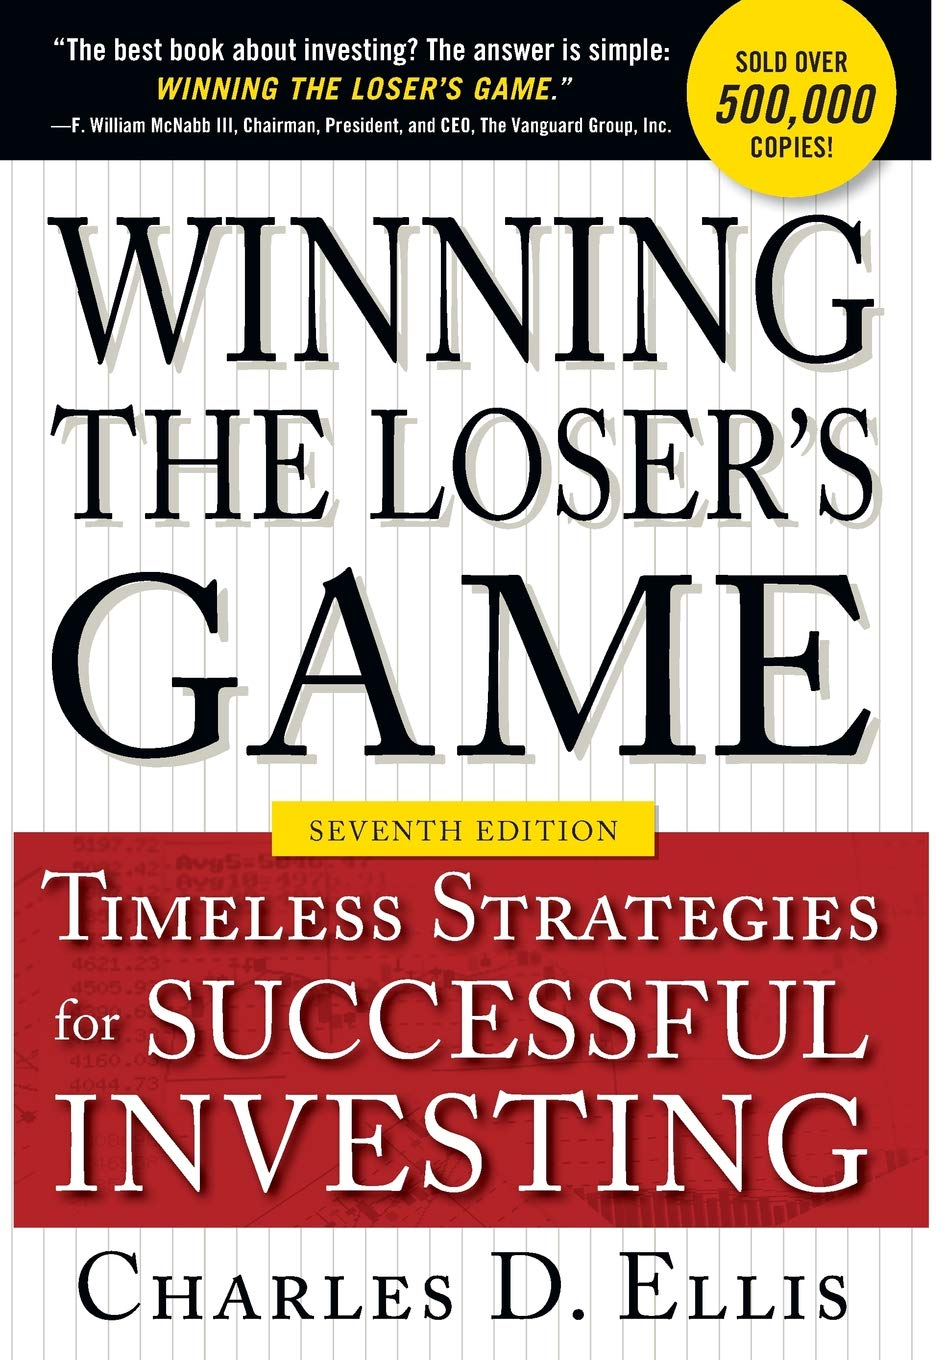 Winning the Loser's Game: Timeless Strategies for Successful Investing - Charles Ellis - reviews for audiobook - reviews, quotes, summary